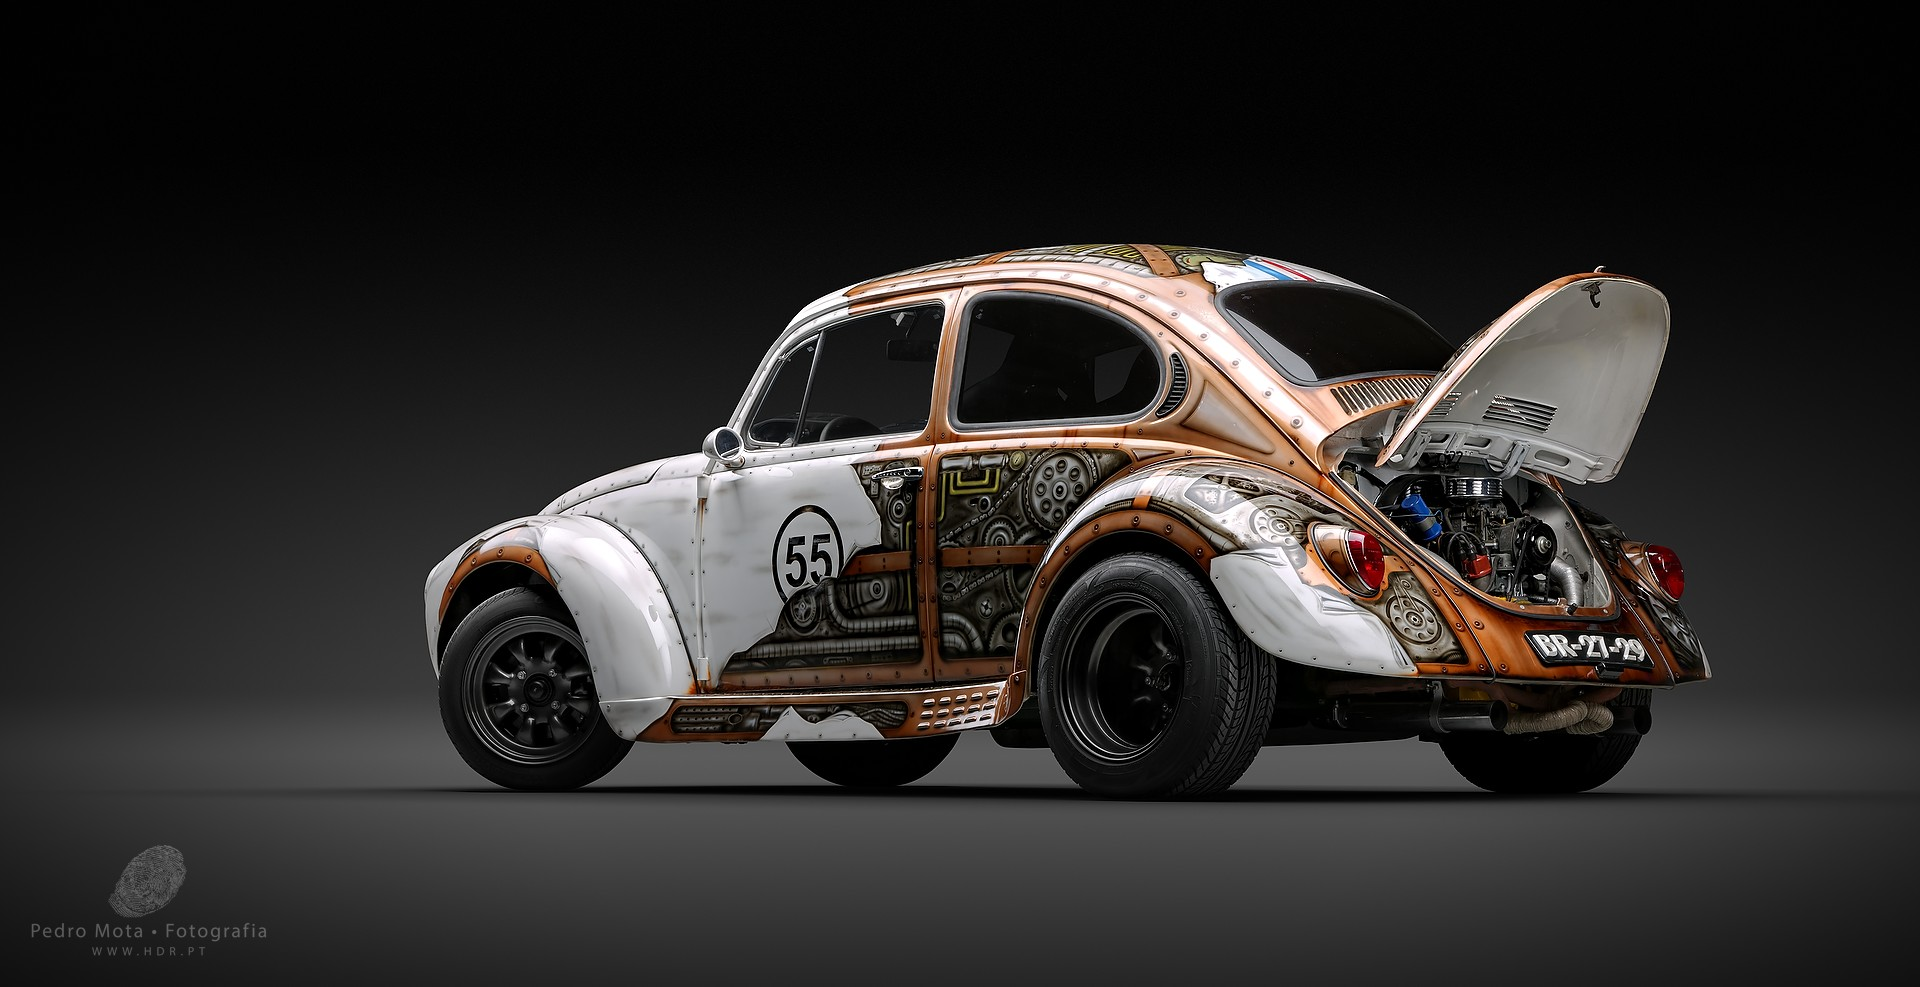 Volkswagen Beetle Kim – Pedro Mota – Automotive Photography